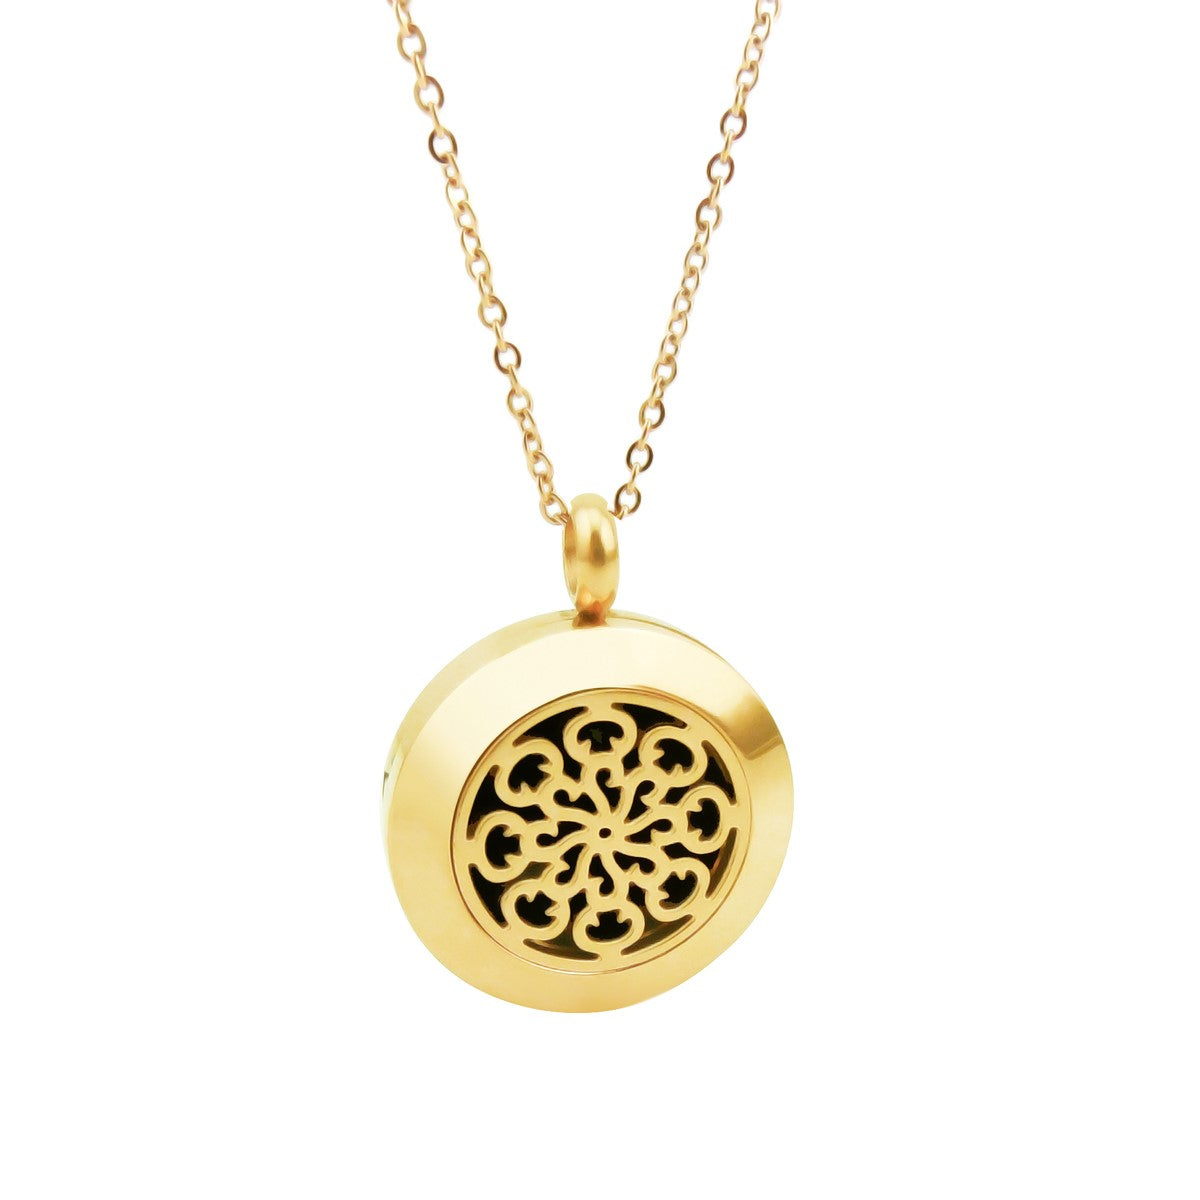 Petite Diffuser Necklace - Small Spiral Pattern- Gold